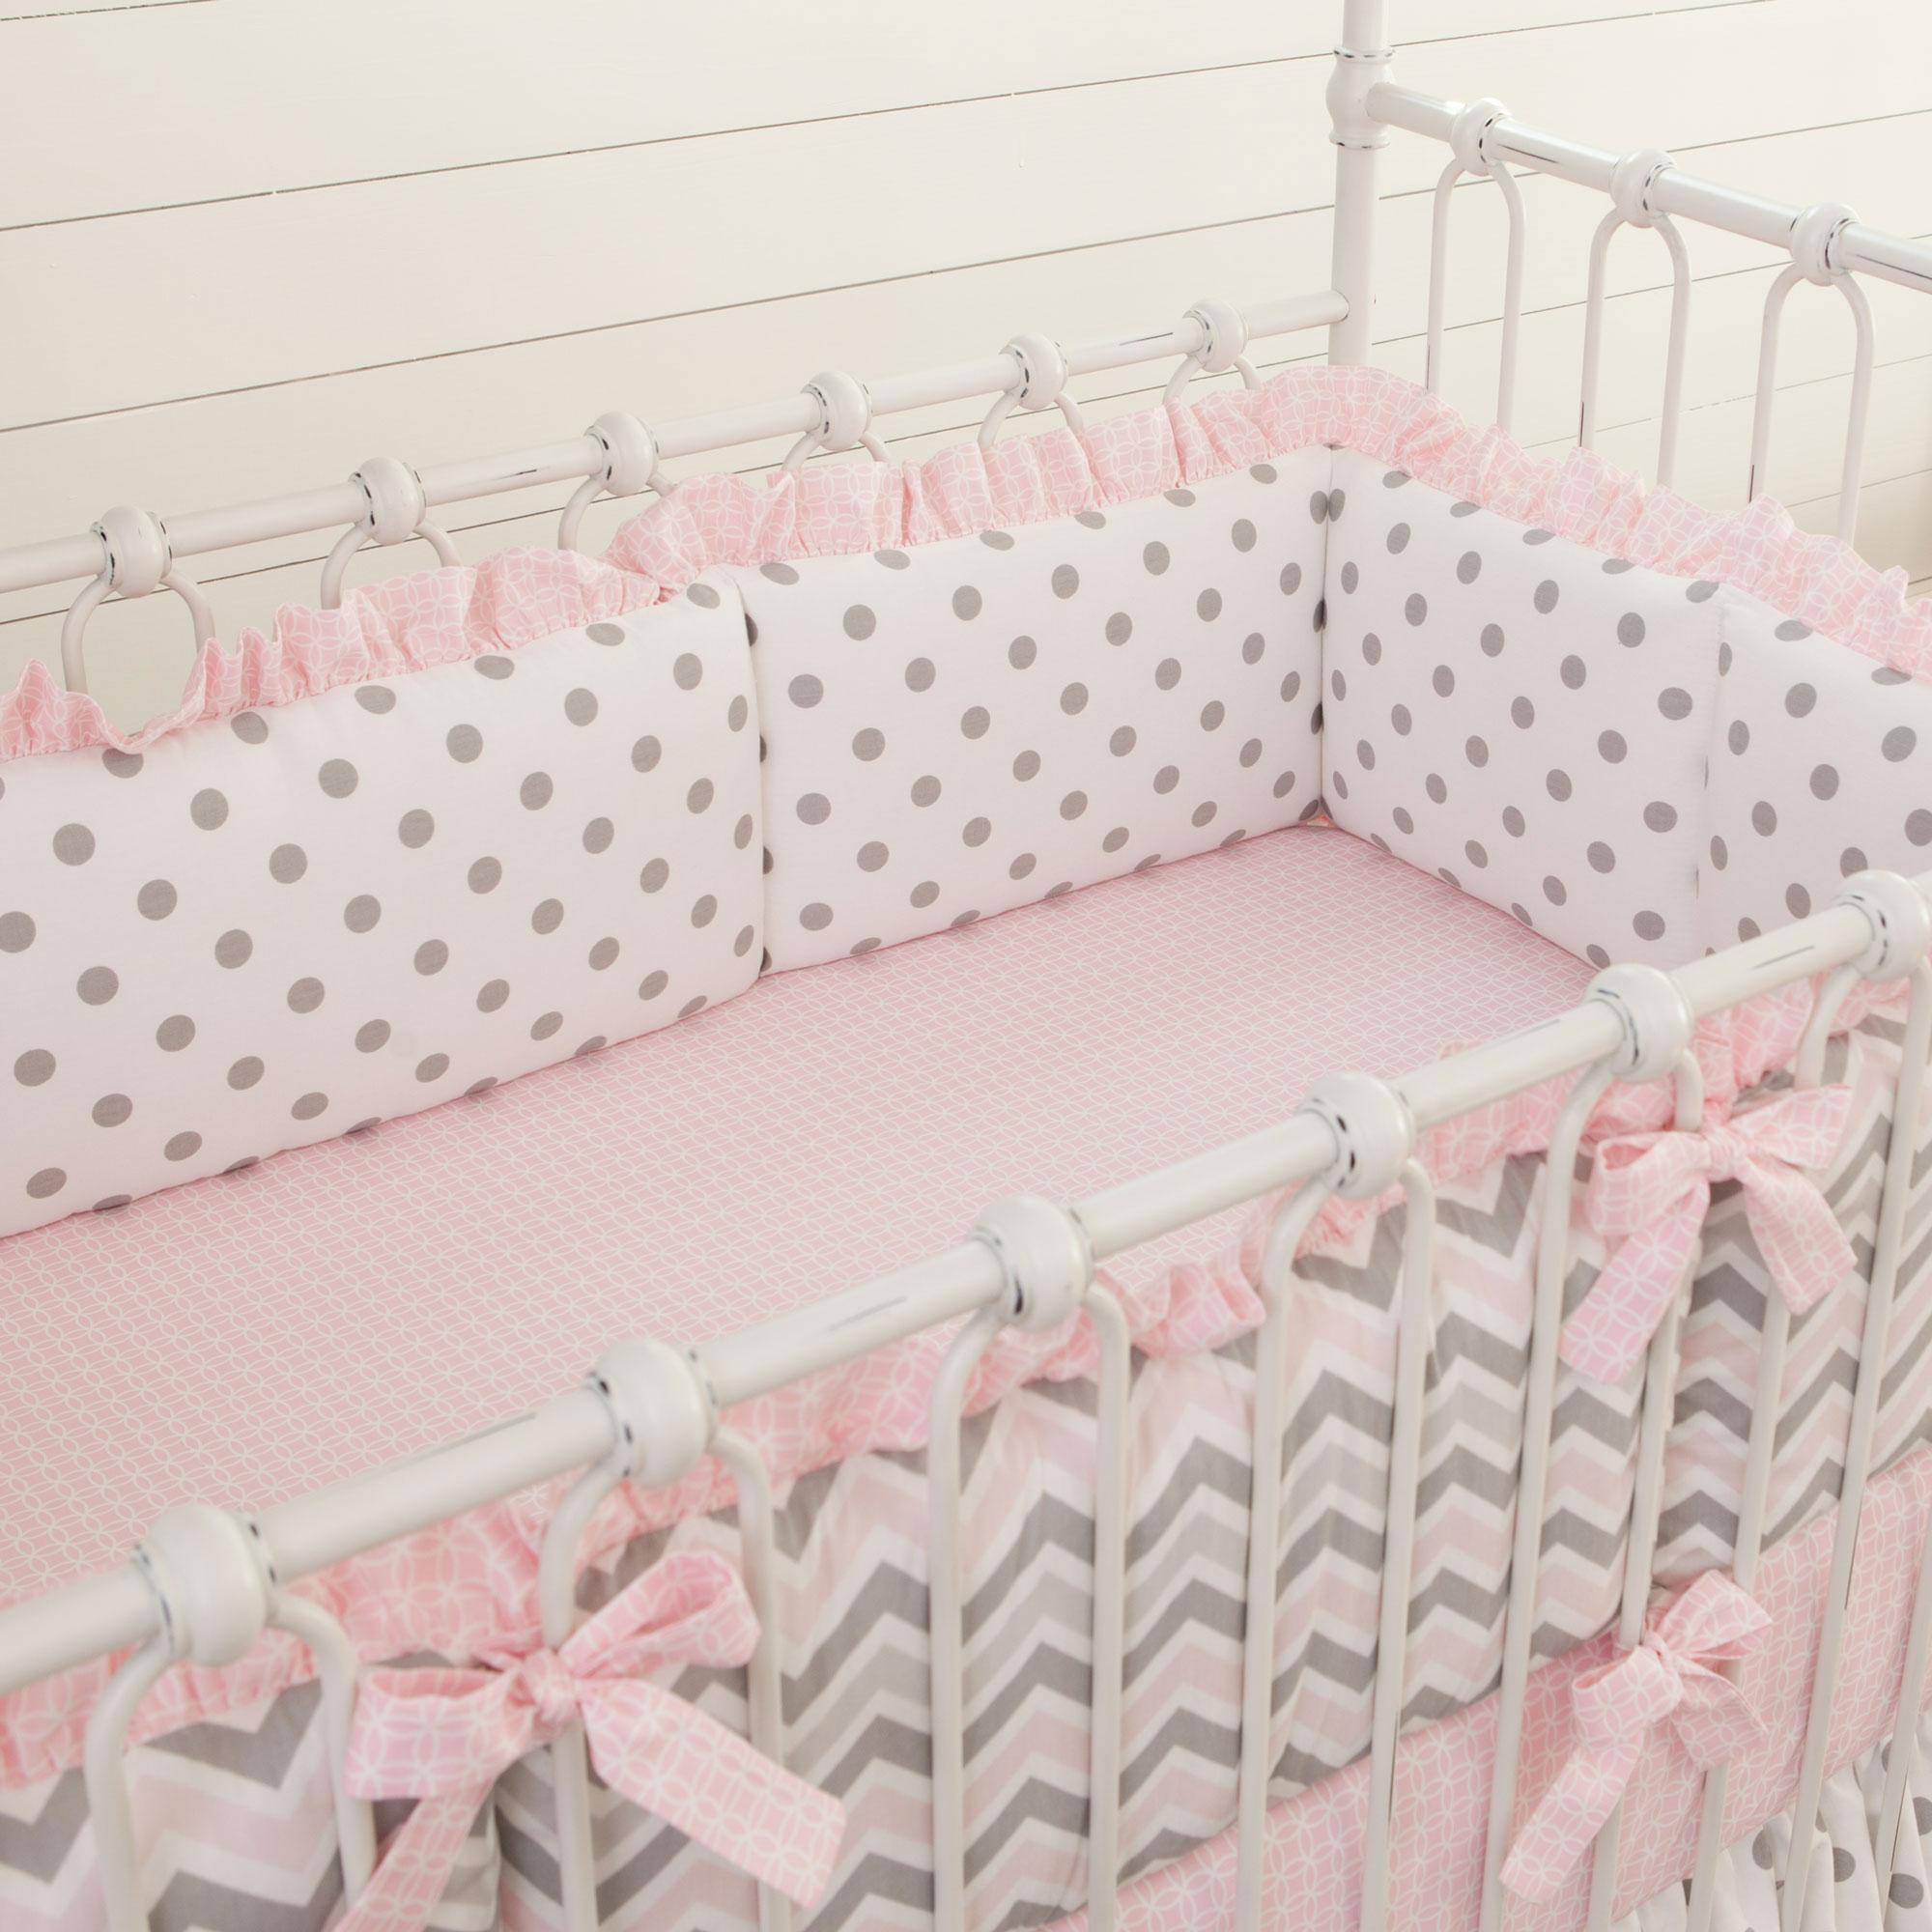 Mesh Crib Liner | Crib Bumper Pads | Coral and Navy Crib Bedding